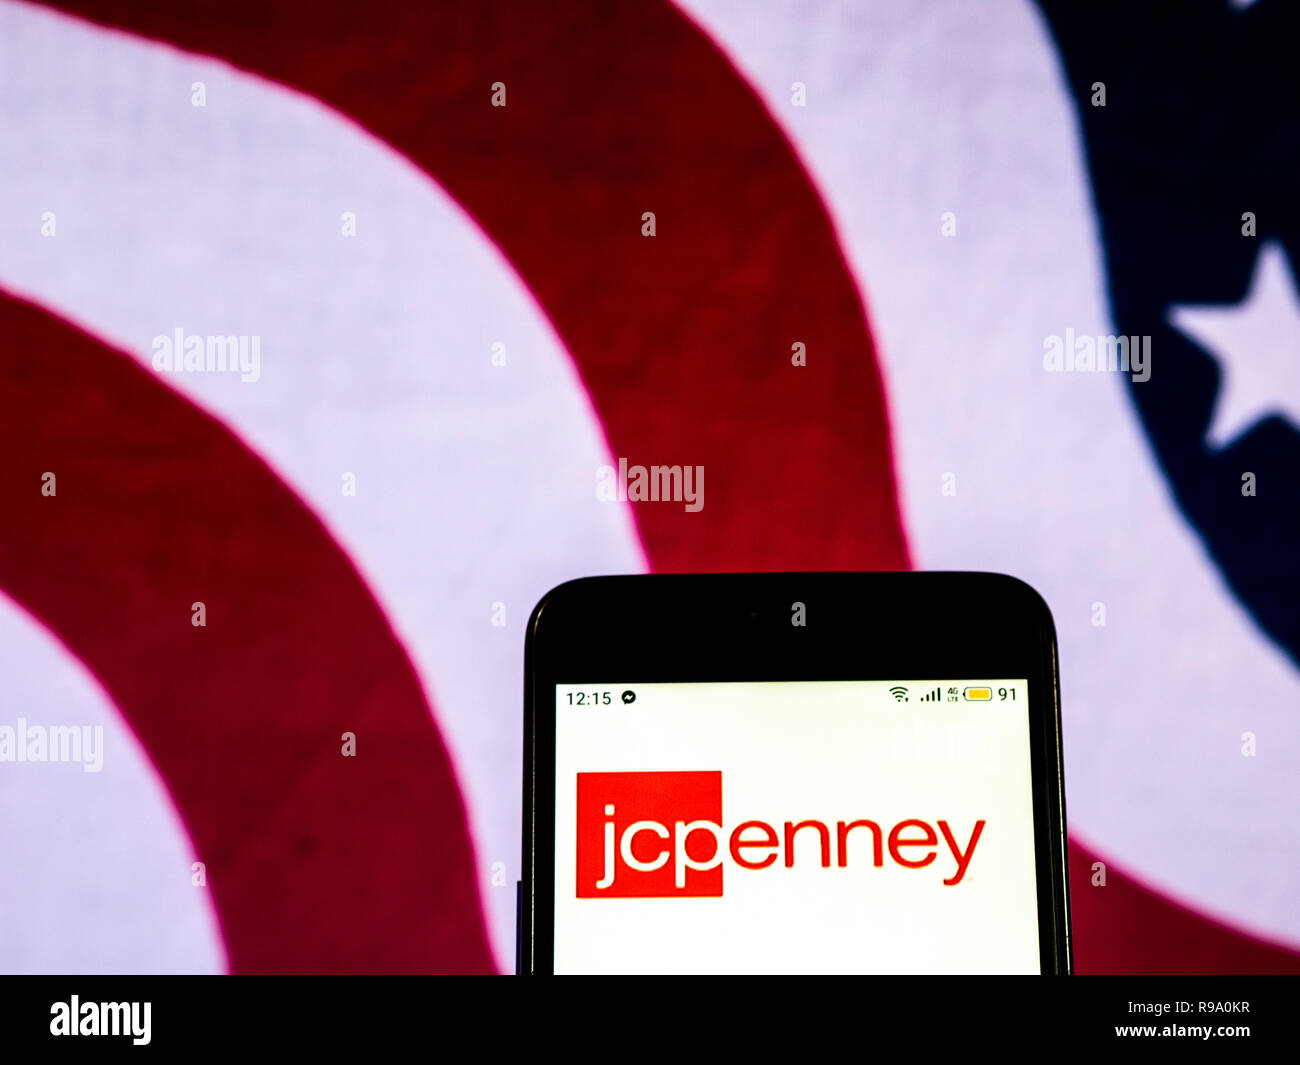 J C Penney Department Store Company Logo Seen Displayed On